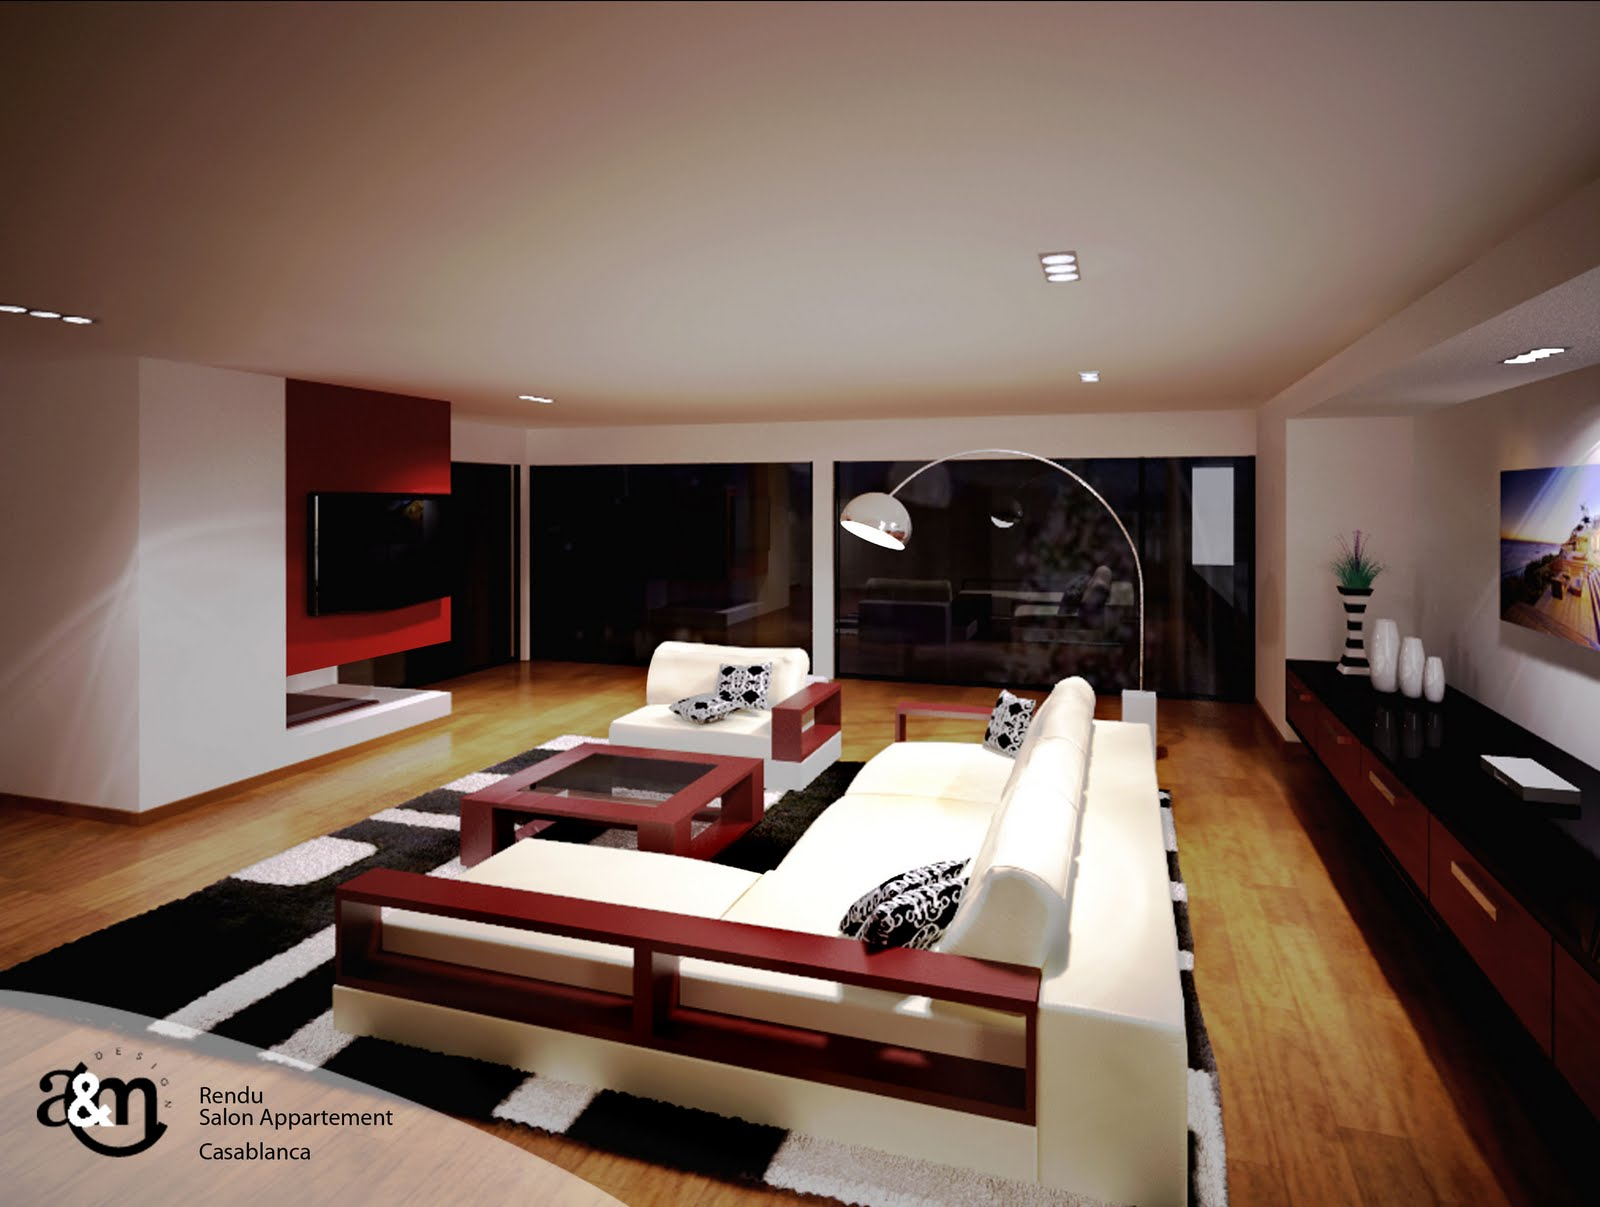 A m design architecture d 39 interieur design agencement for Architecture interieur